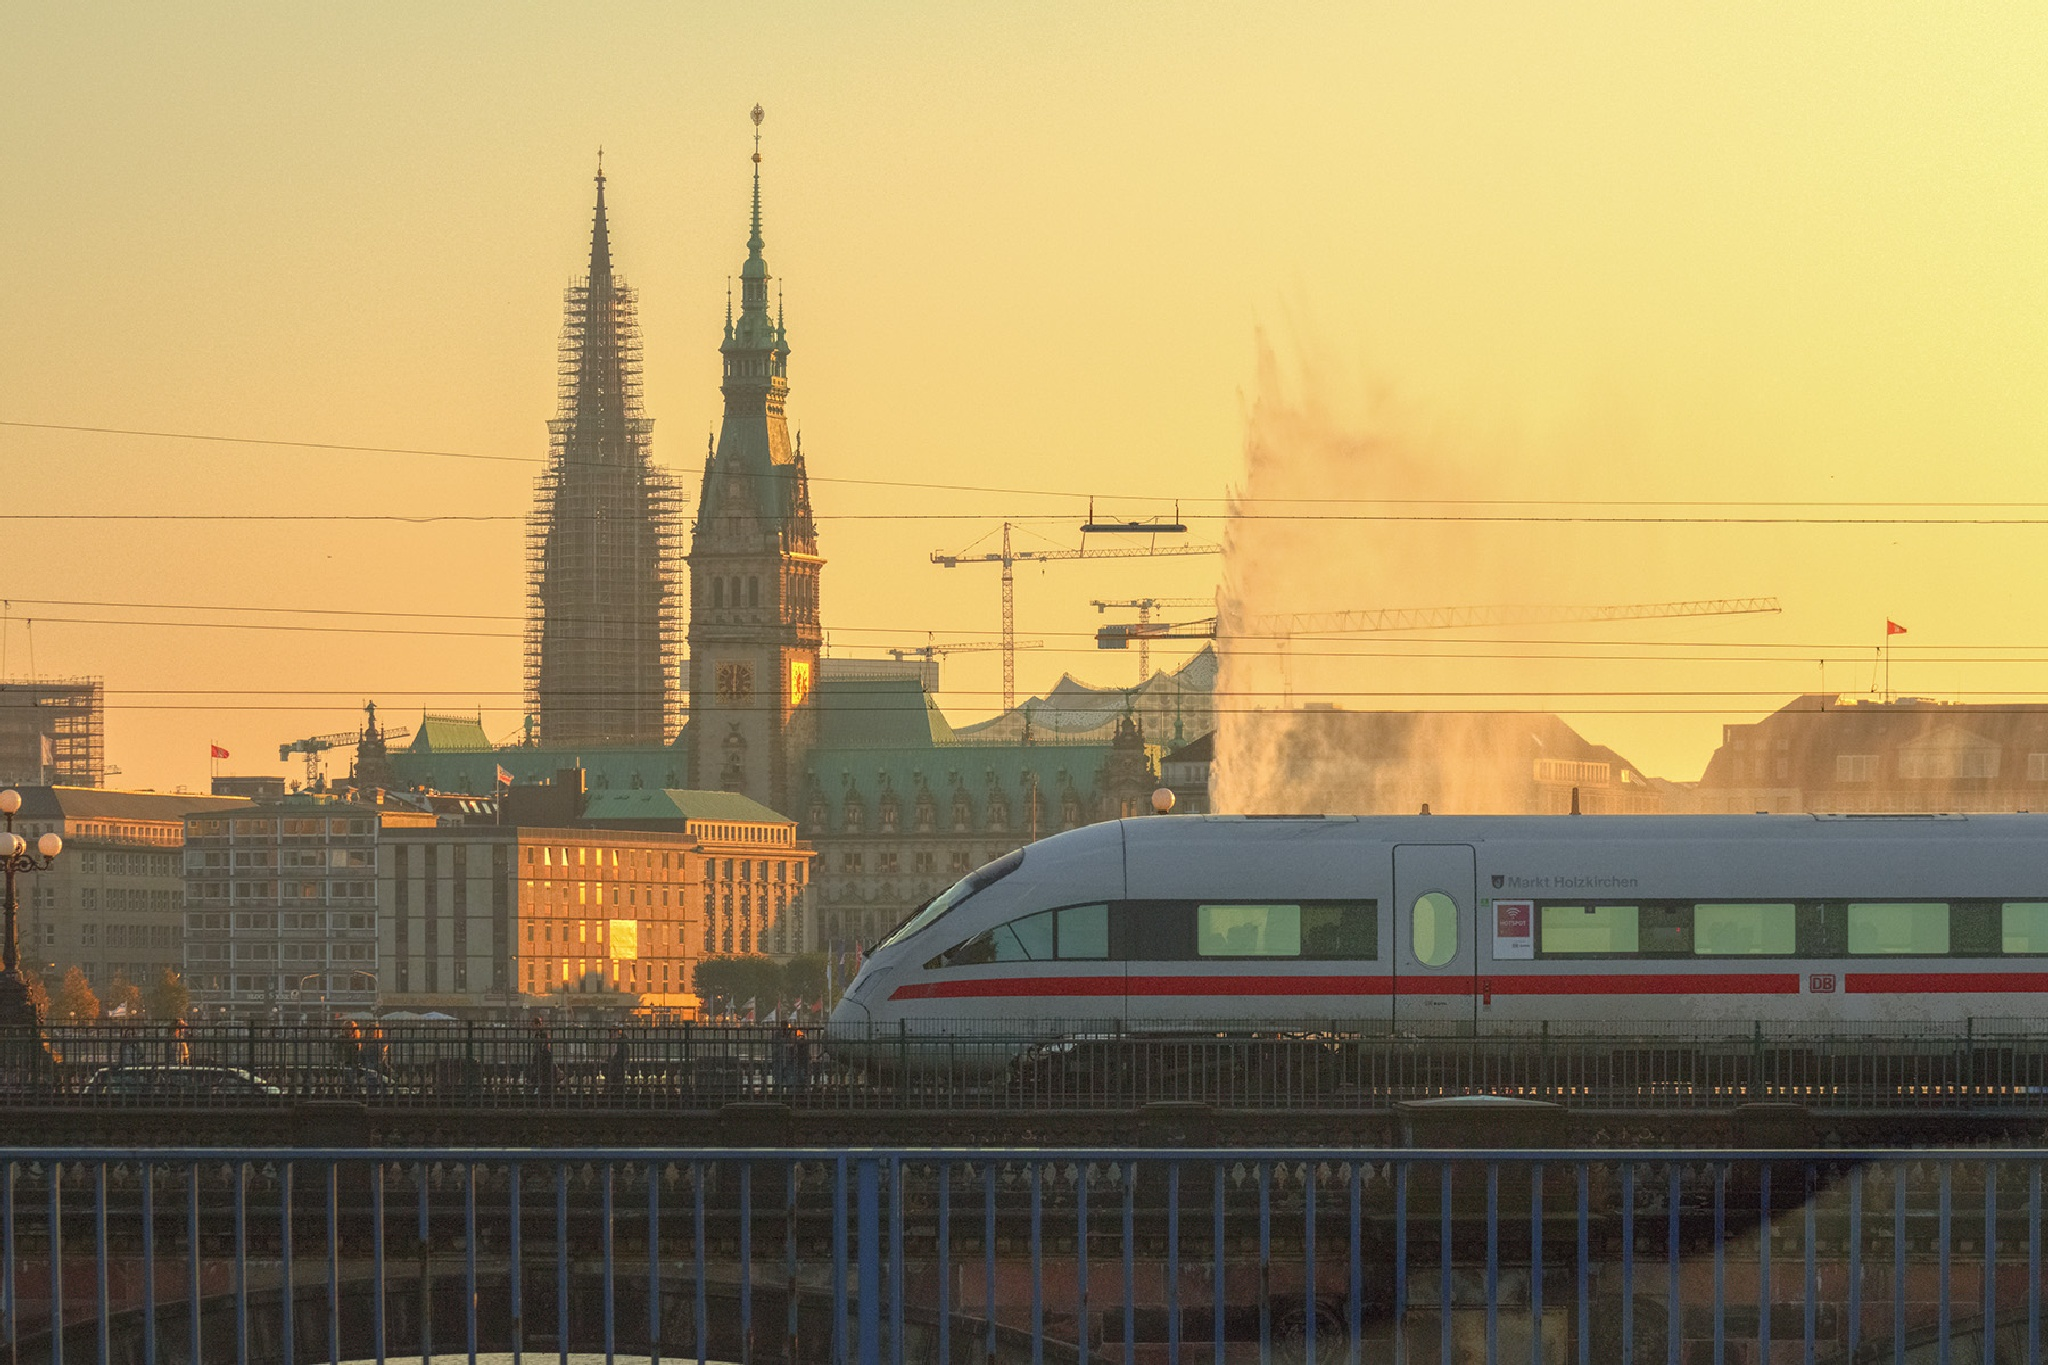 Hamburg - ICE train by Maik Richter Photography